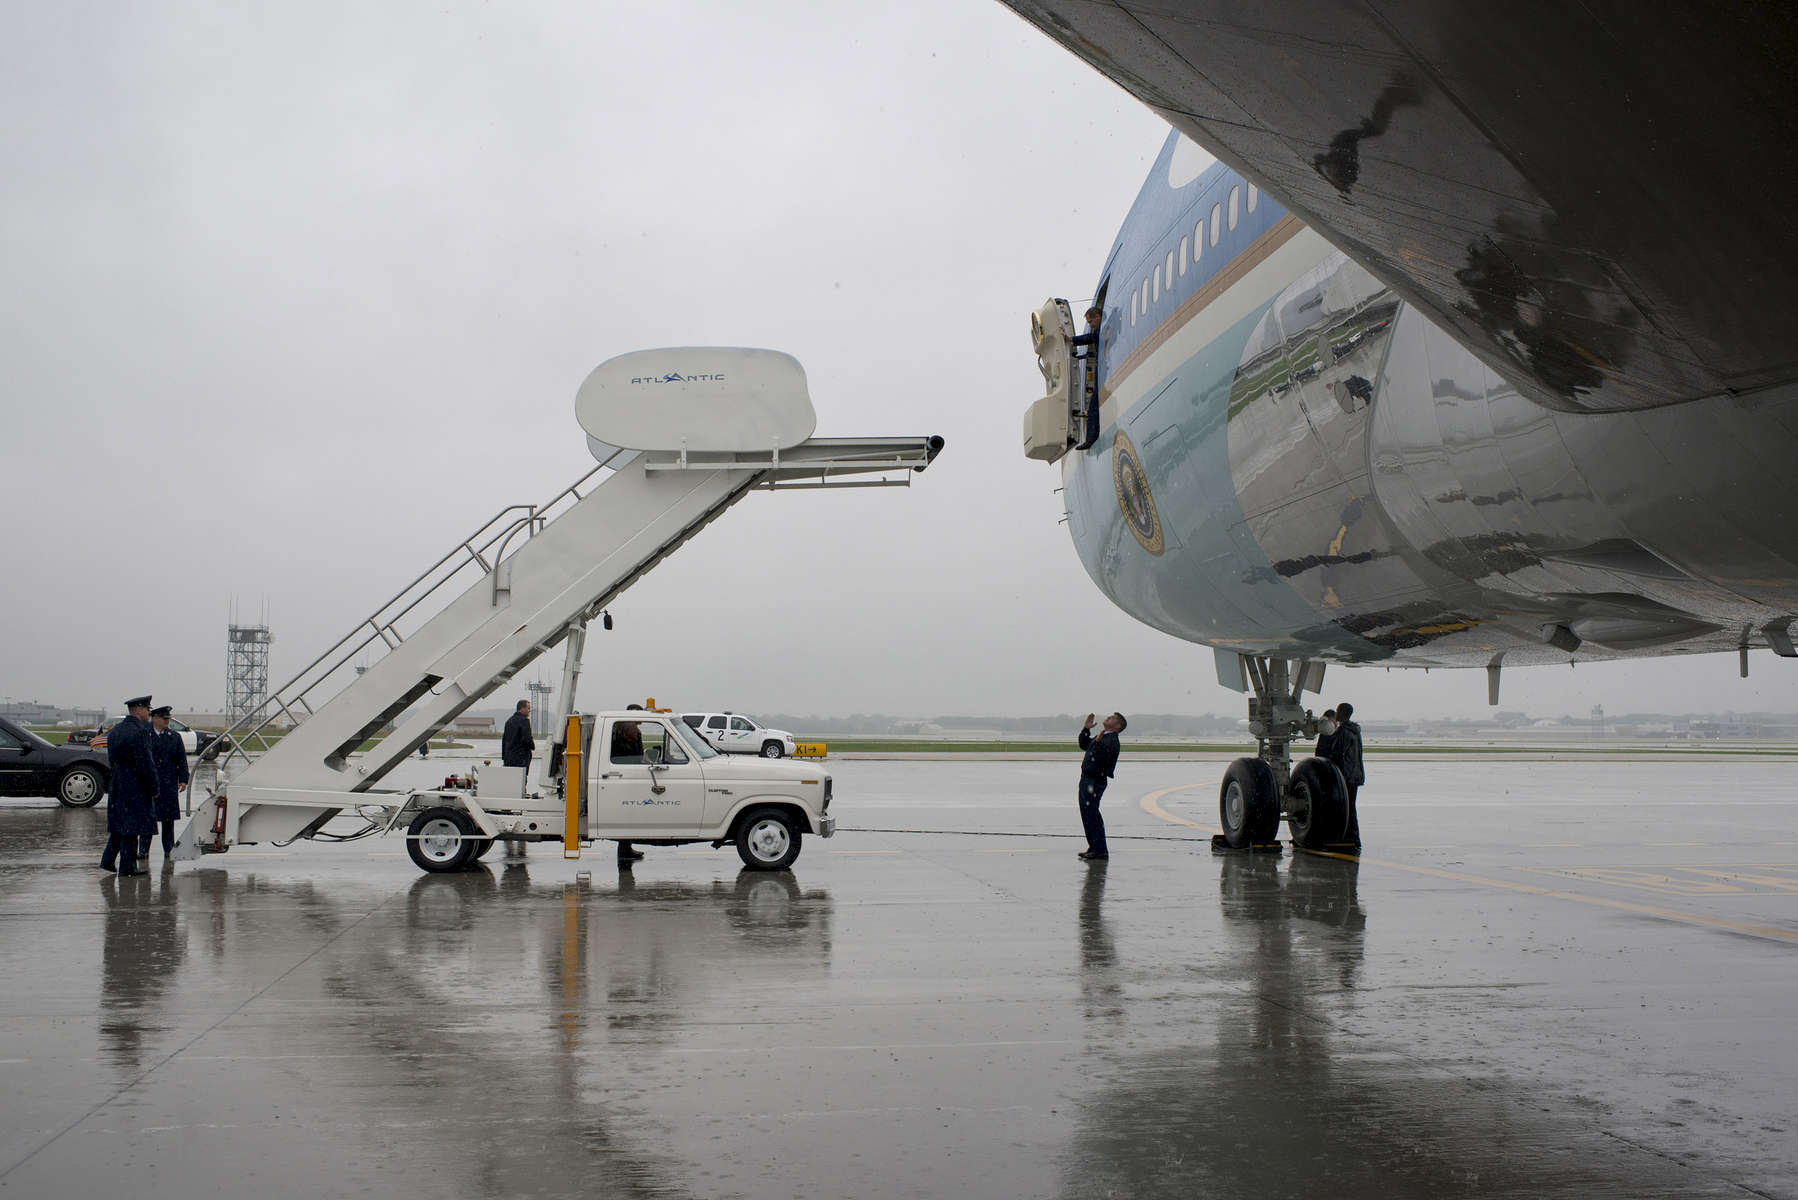 October 5, 2012 - Cleveland, OH- Air Force One and ground staff at Hopkins Airport in Cleveland attempt to line the steps up with Air Force One on a rainy day. (Scout Tufankjian for Obama for America/Polaris)